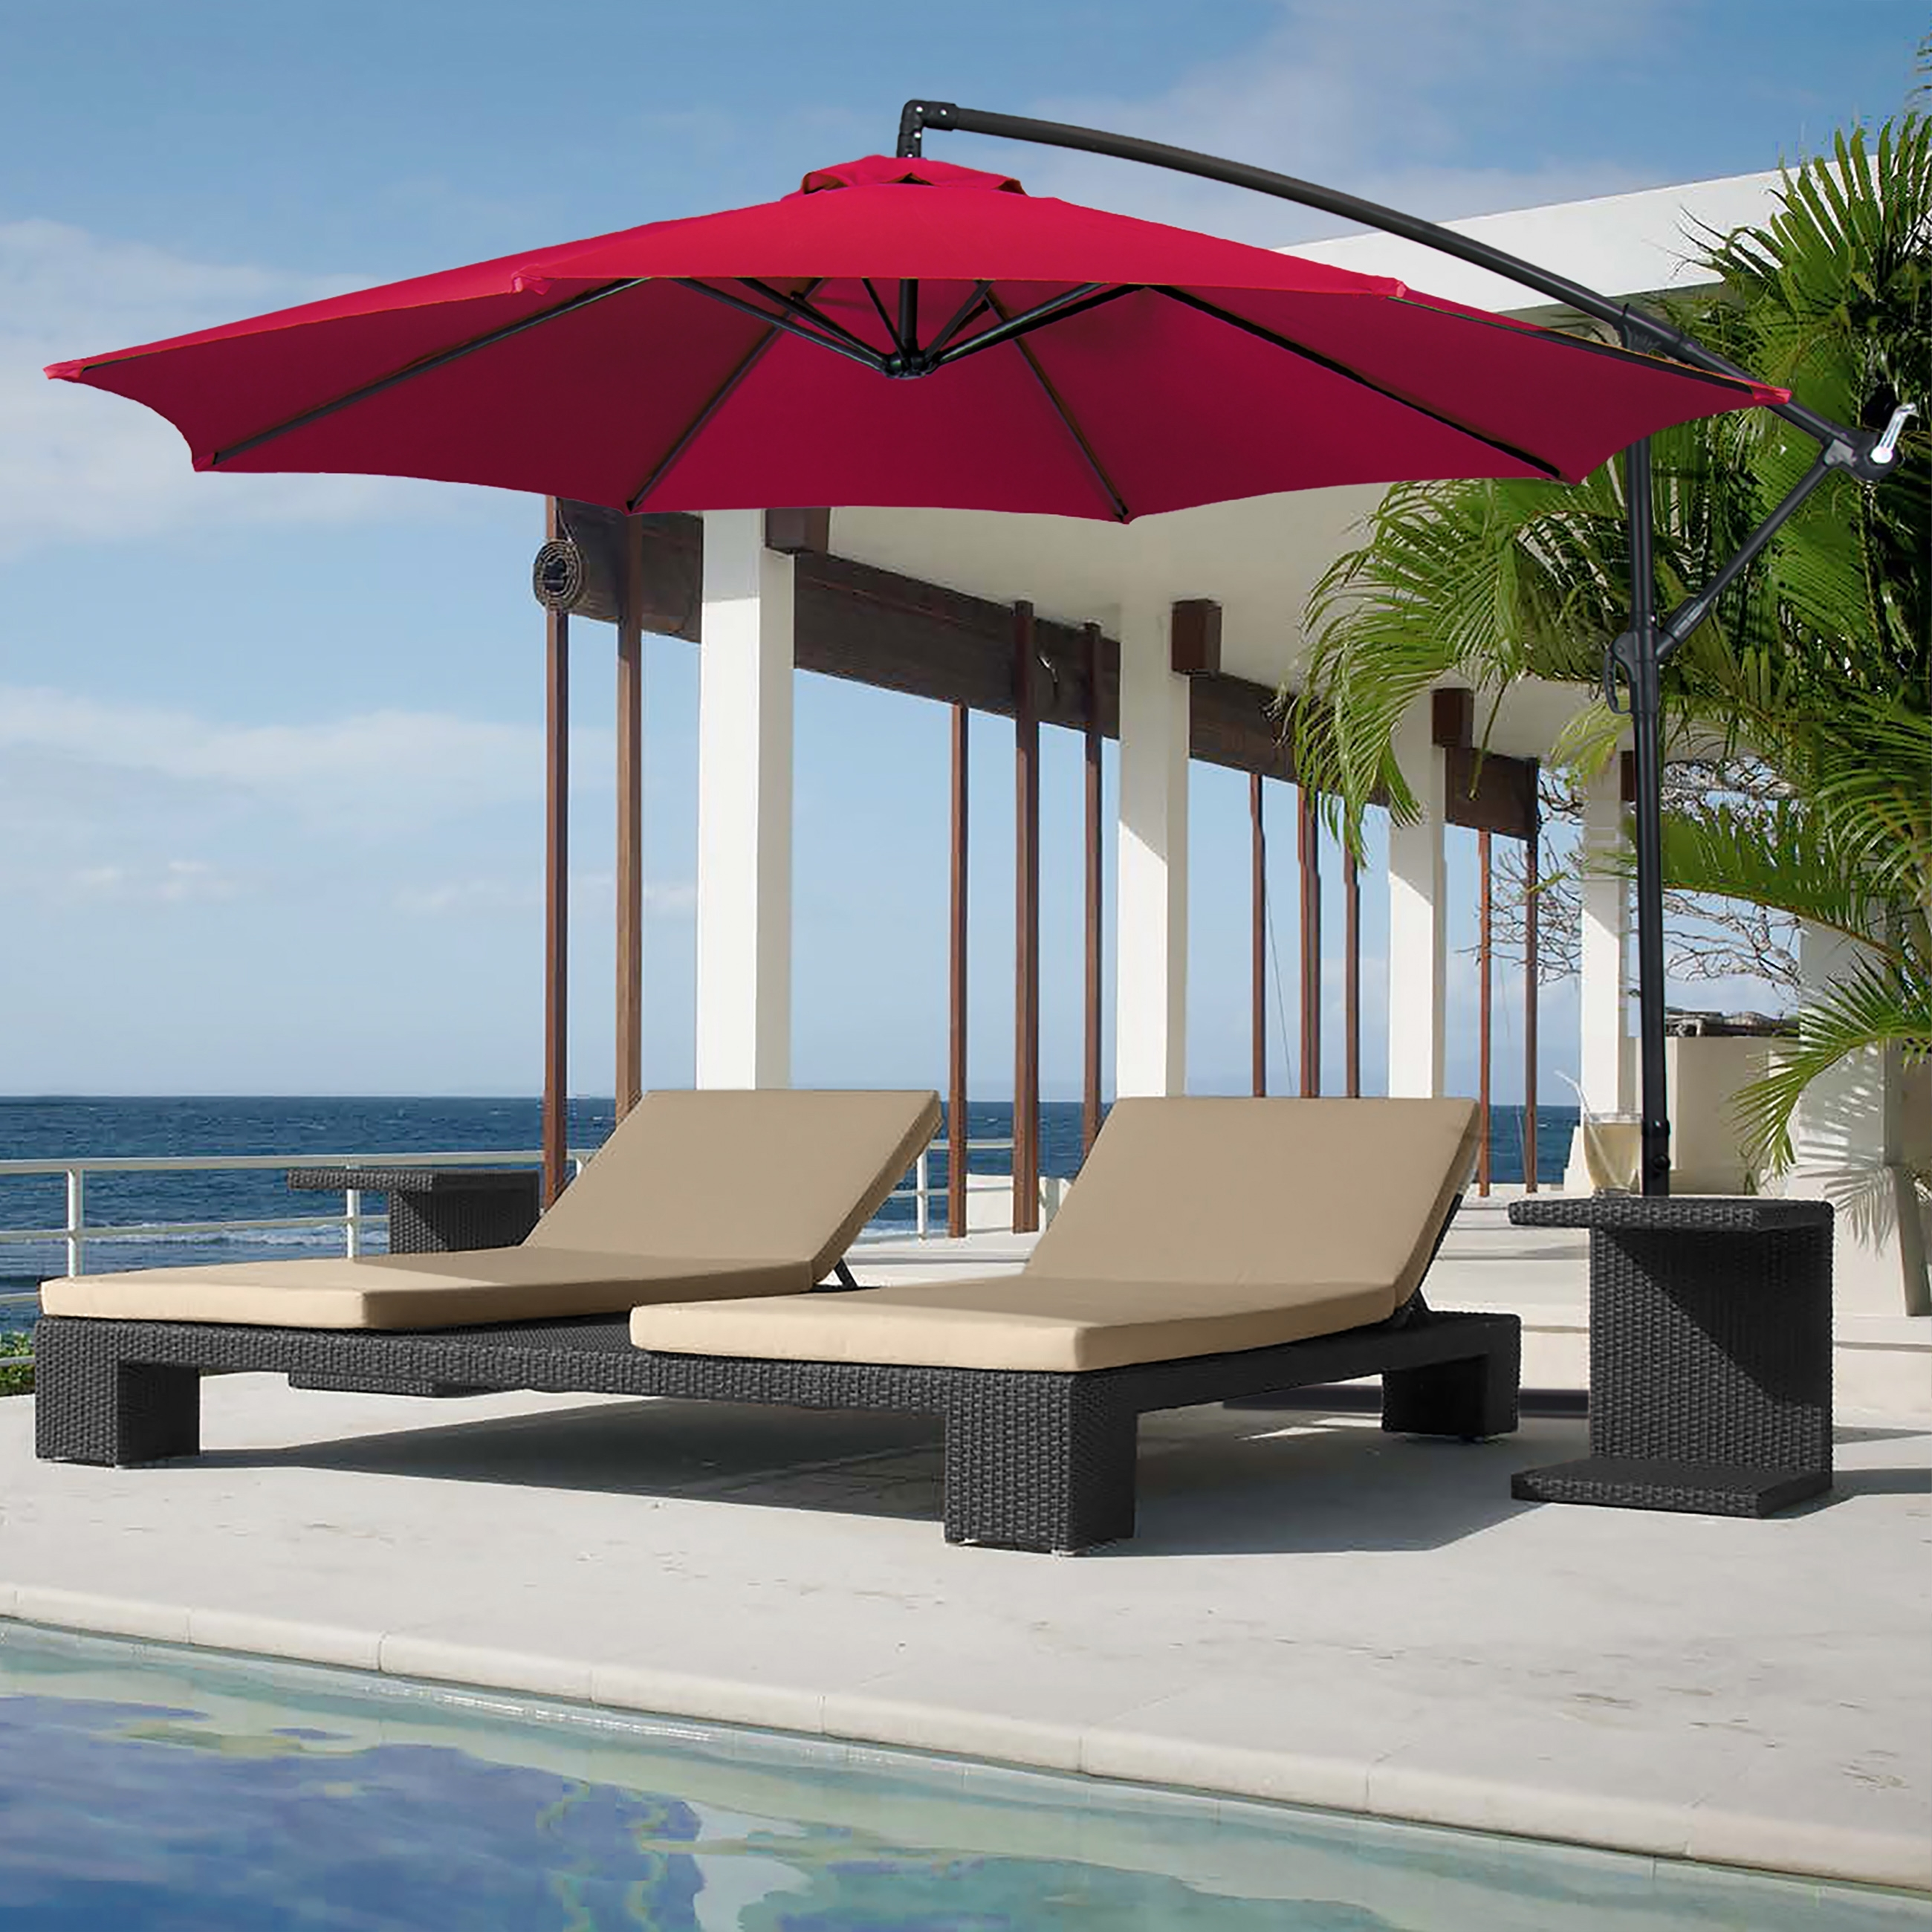 Popular Enjoy In The Shade Of Patio Umbrella Throughout The Day Within Hanging Patio Umbrellas (Gallery 14 of 20)